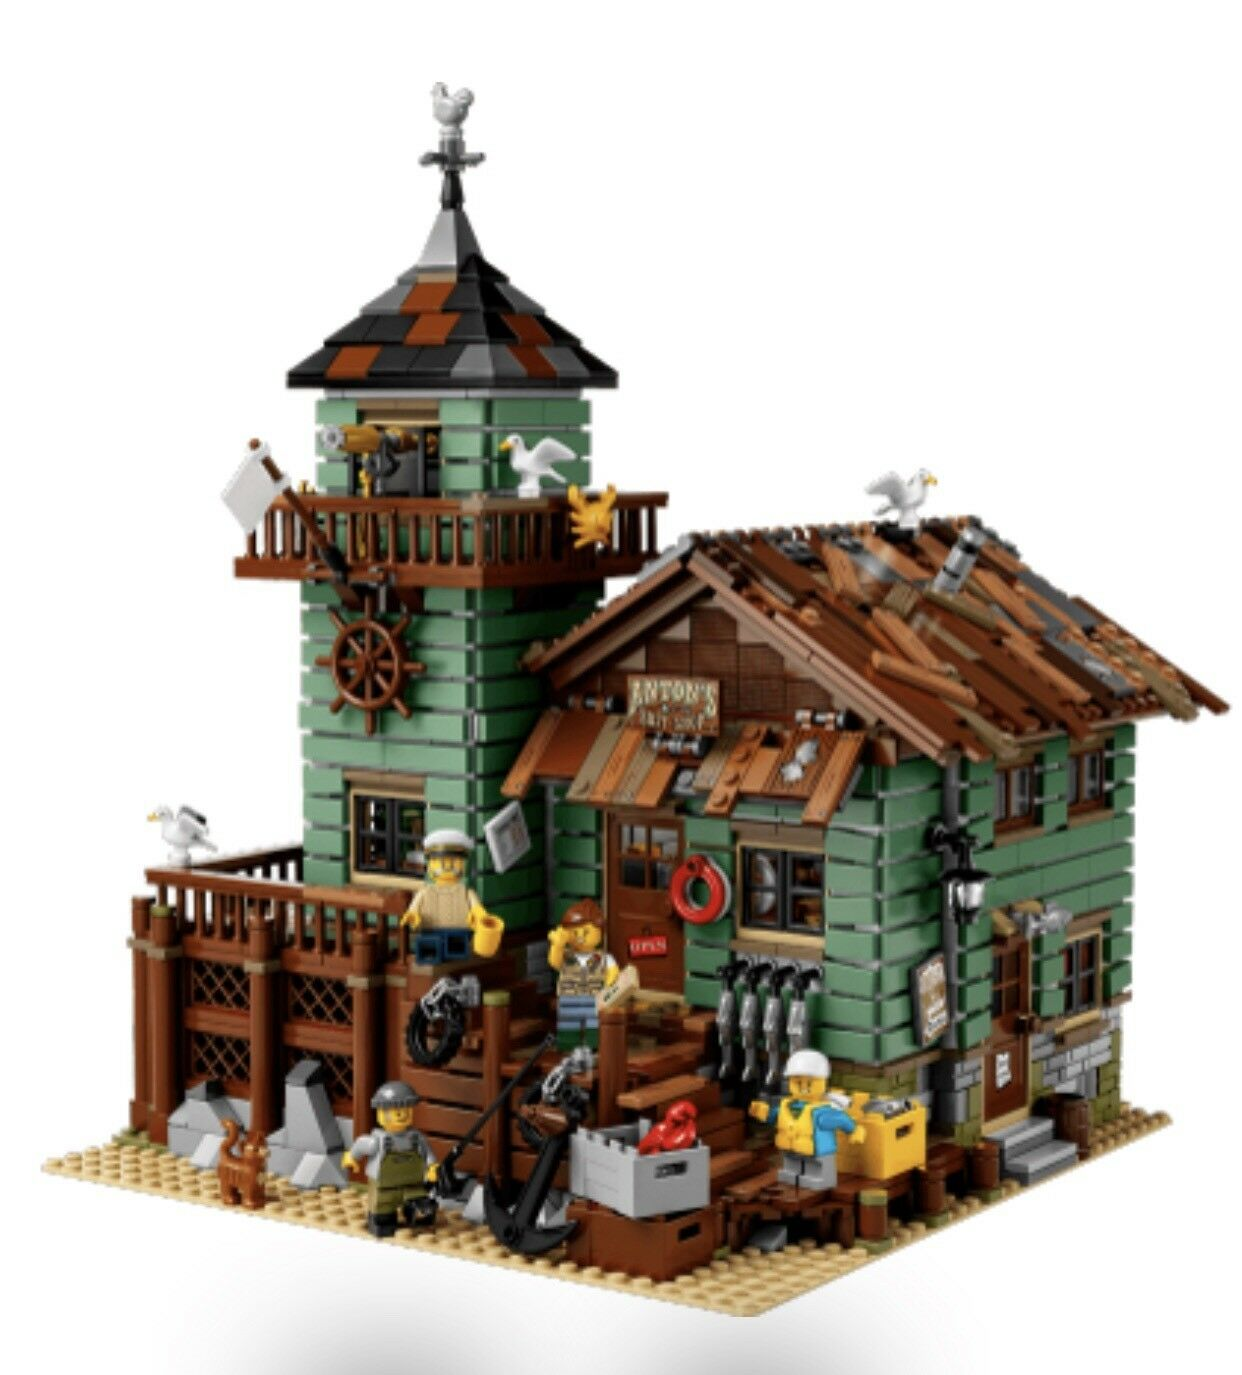 Lego Idea Old Fishing Store 21310 Brand New In Box